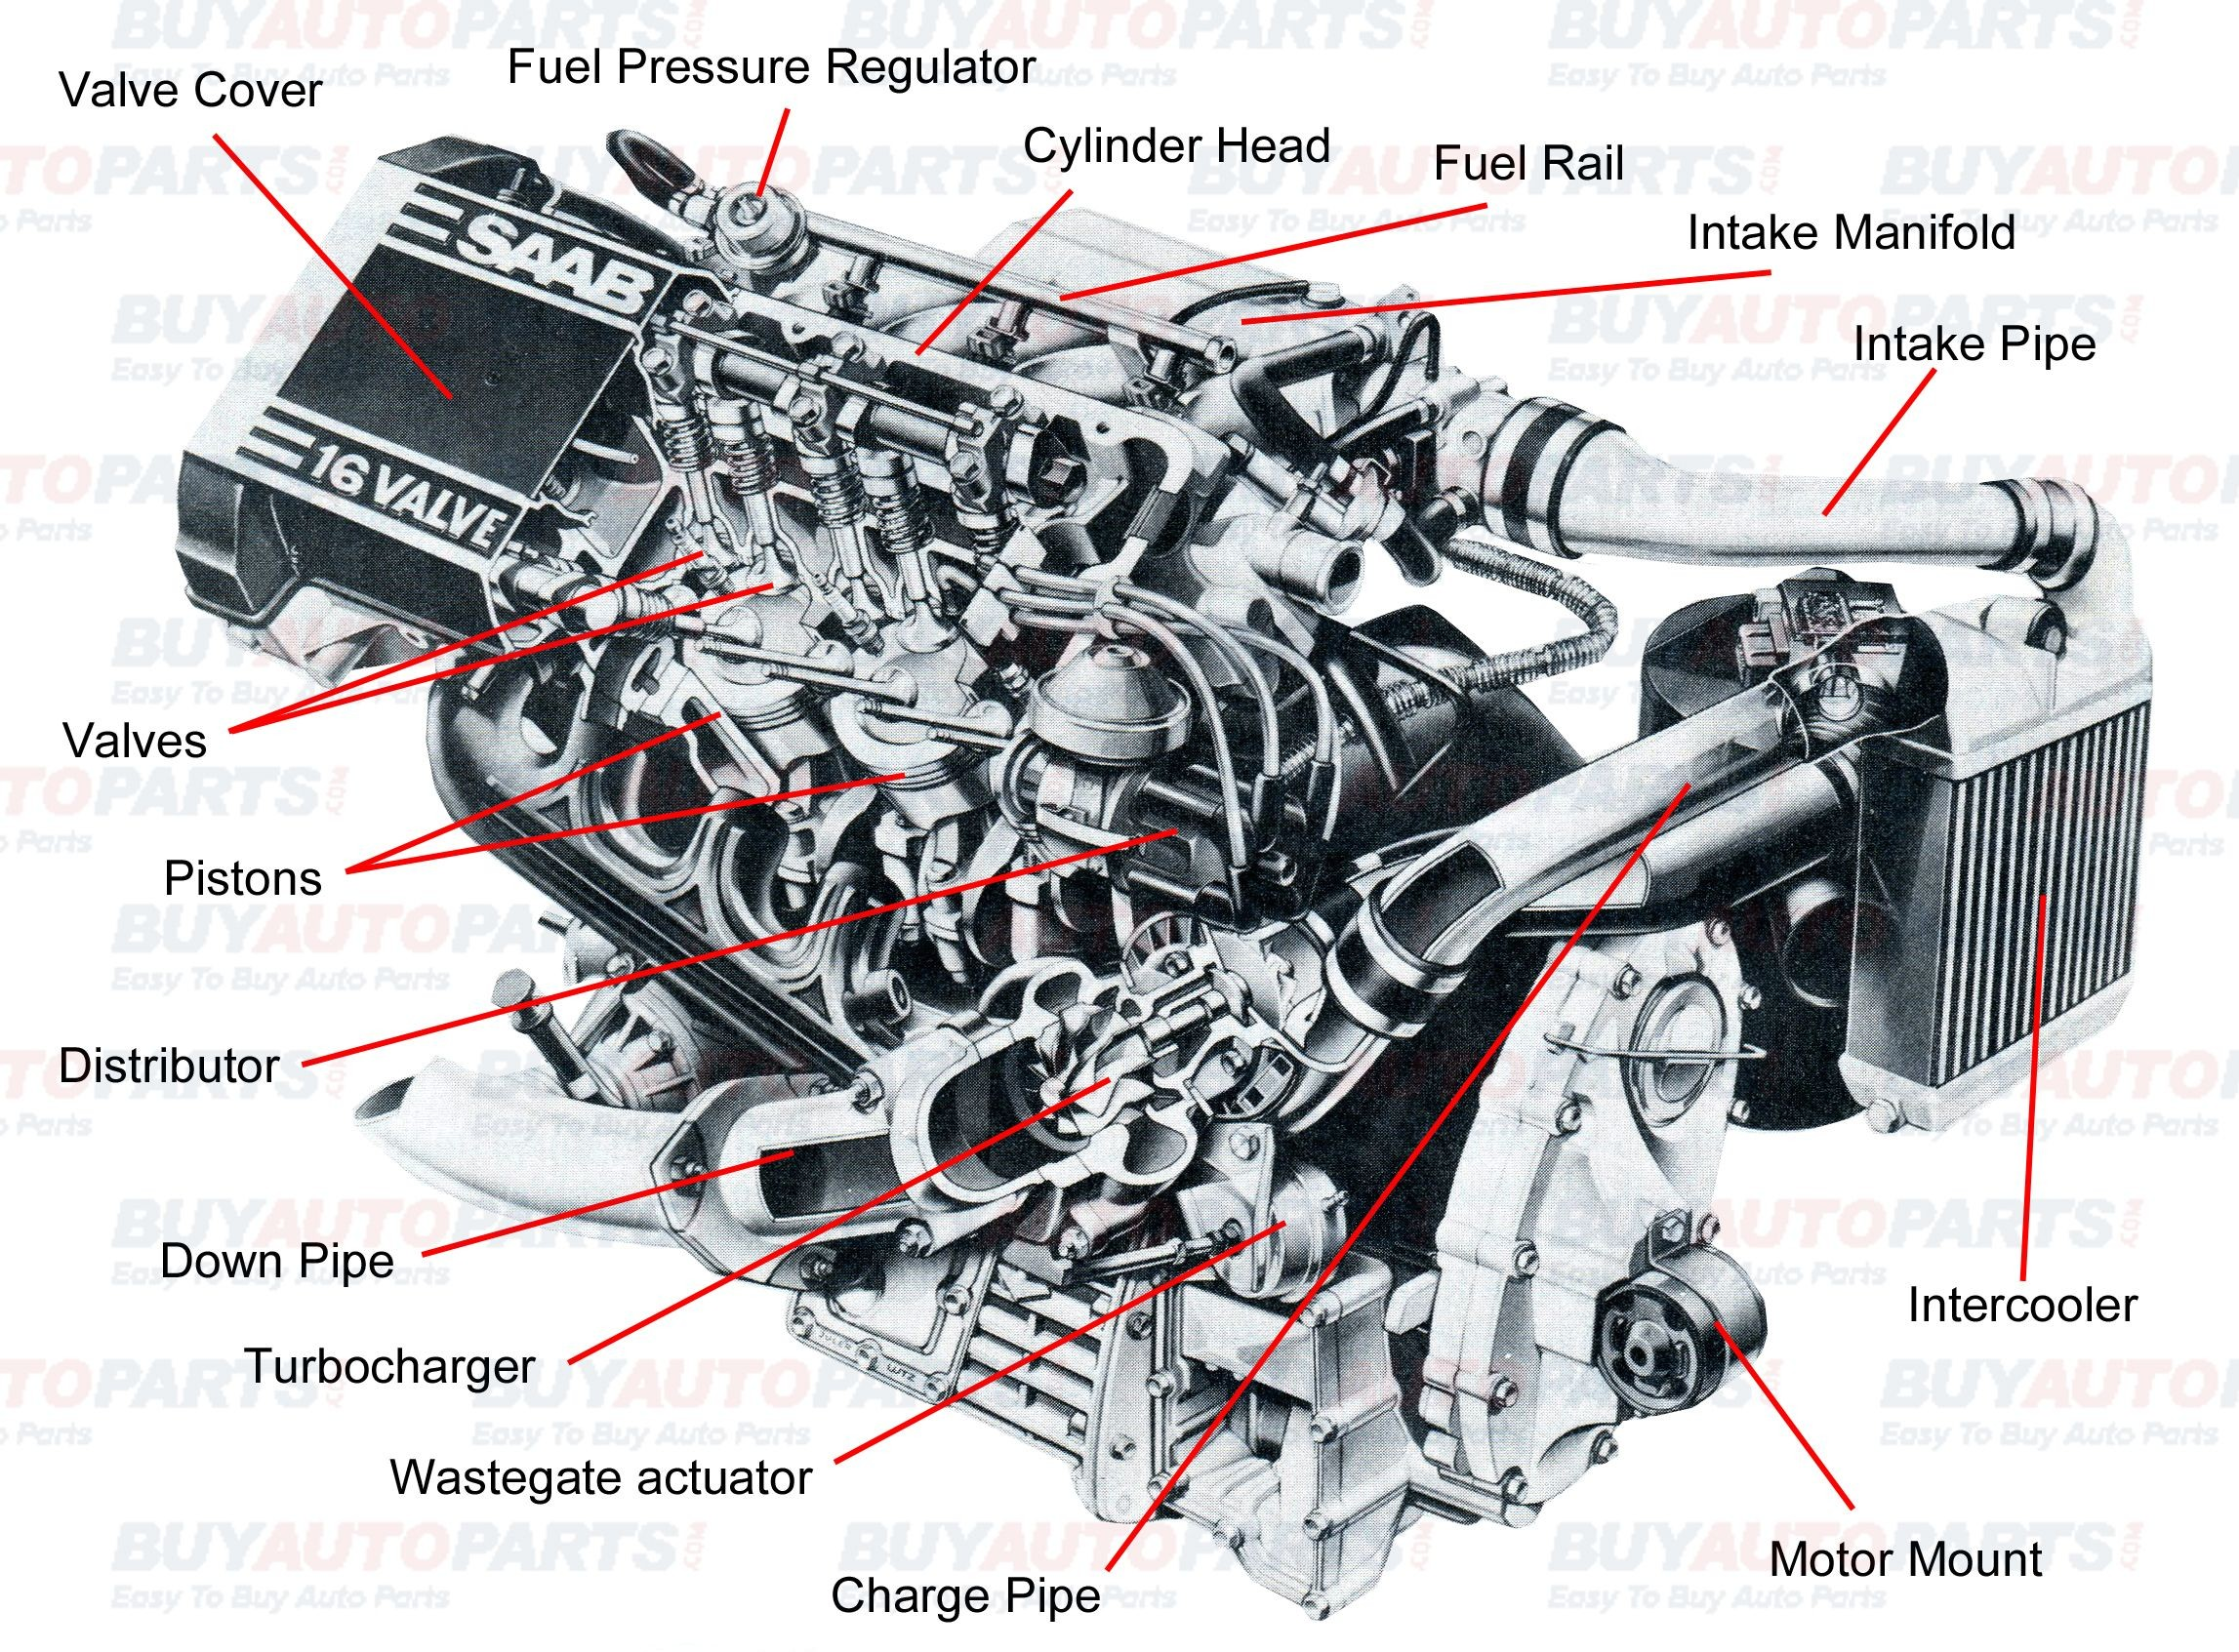 Car Engine Diagram Piston Pin by Jimmiejanet Testellamwfz On What Does An Engine with Turbo Of Car Engine Diagram Piston